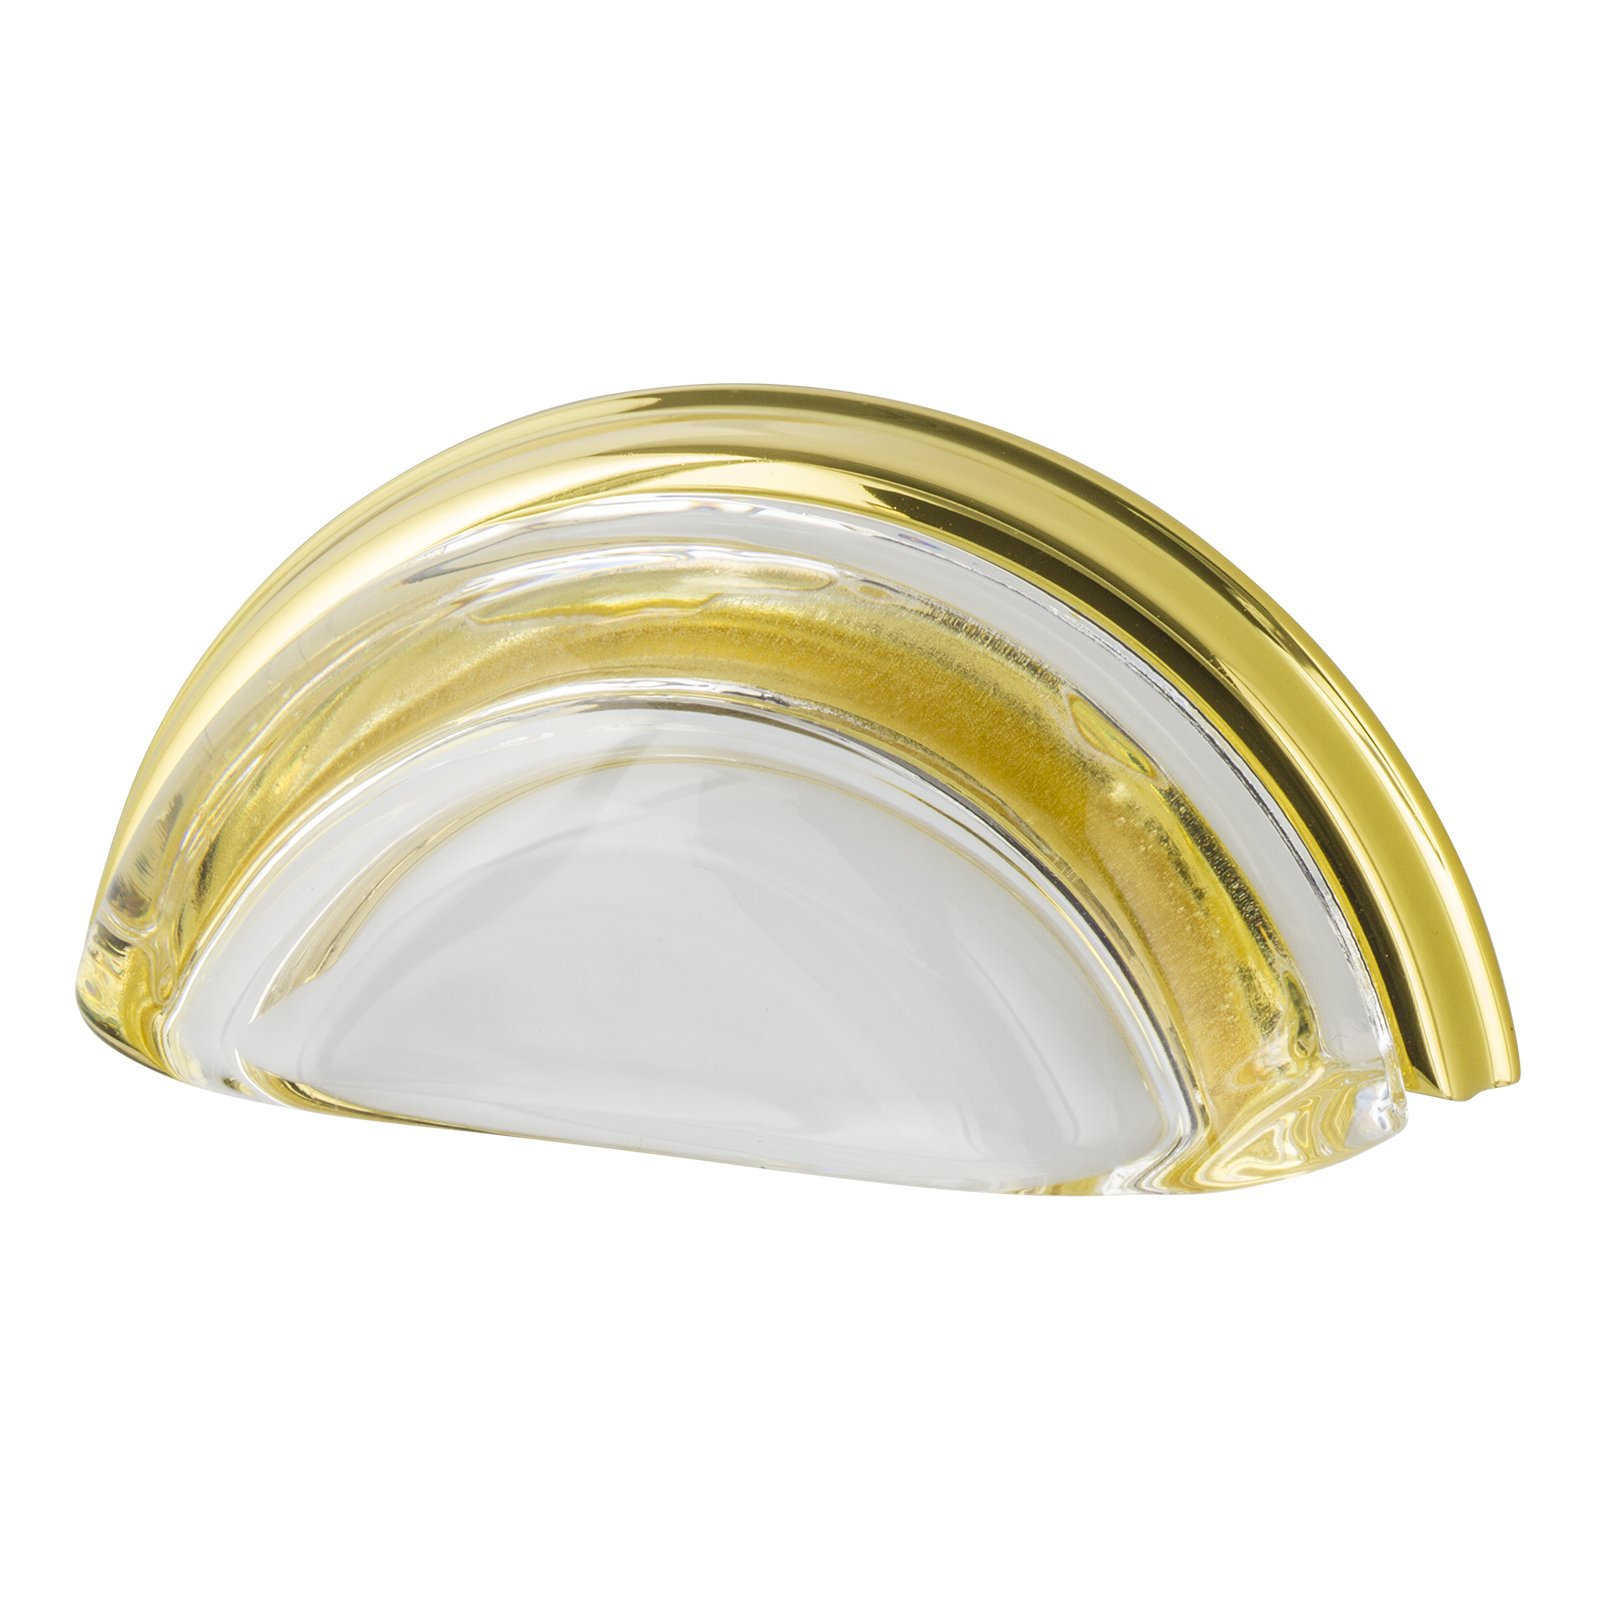 Nostalgic Warehouse 755400 Cup Pull Crystal Clear, 3'' on Center, Polished Brass